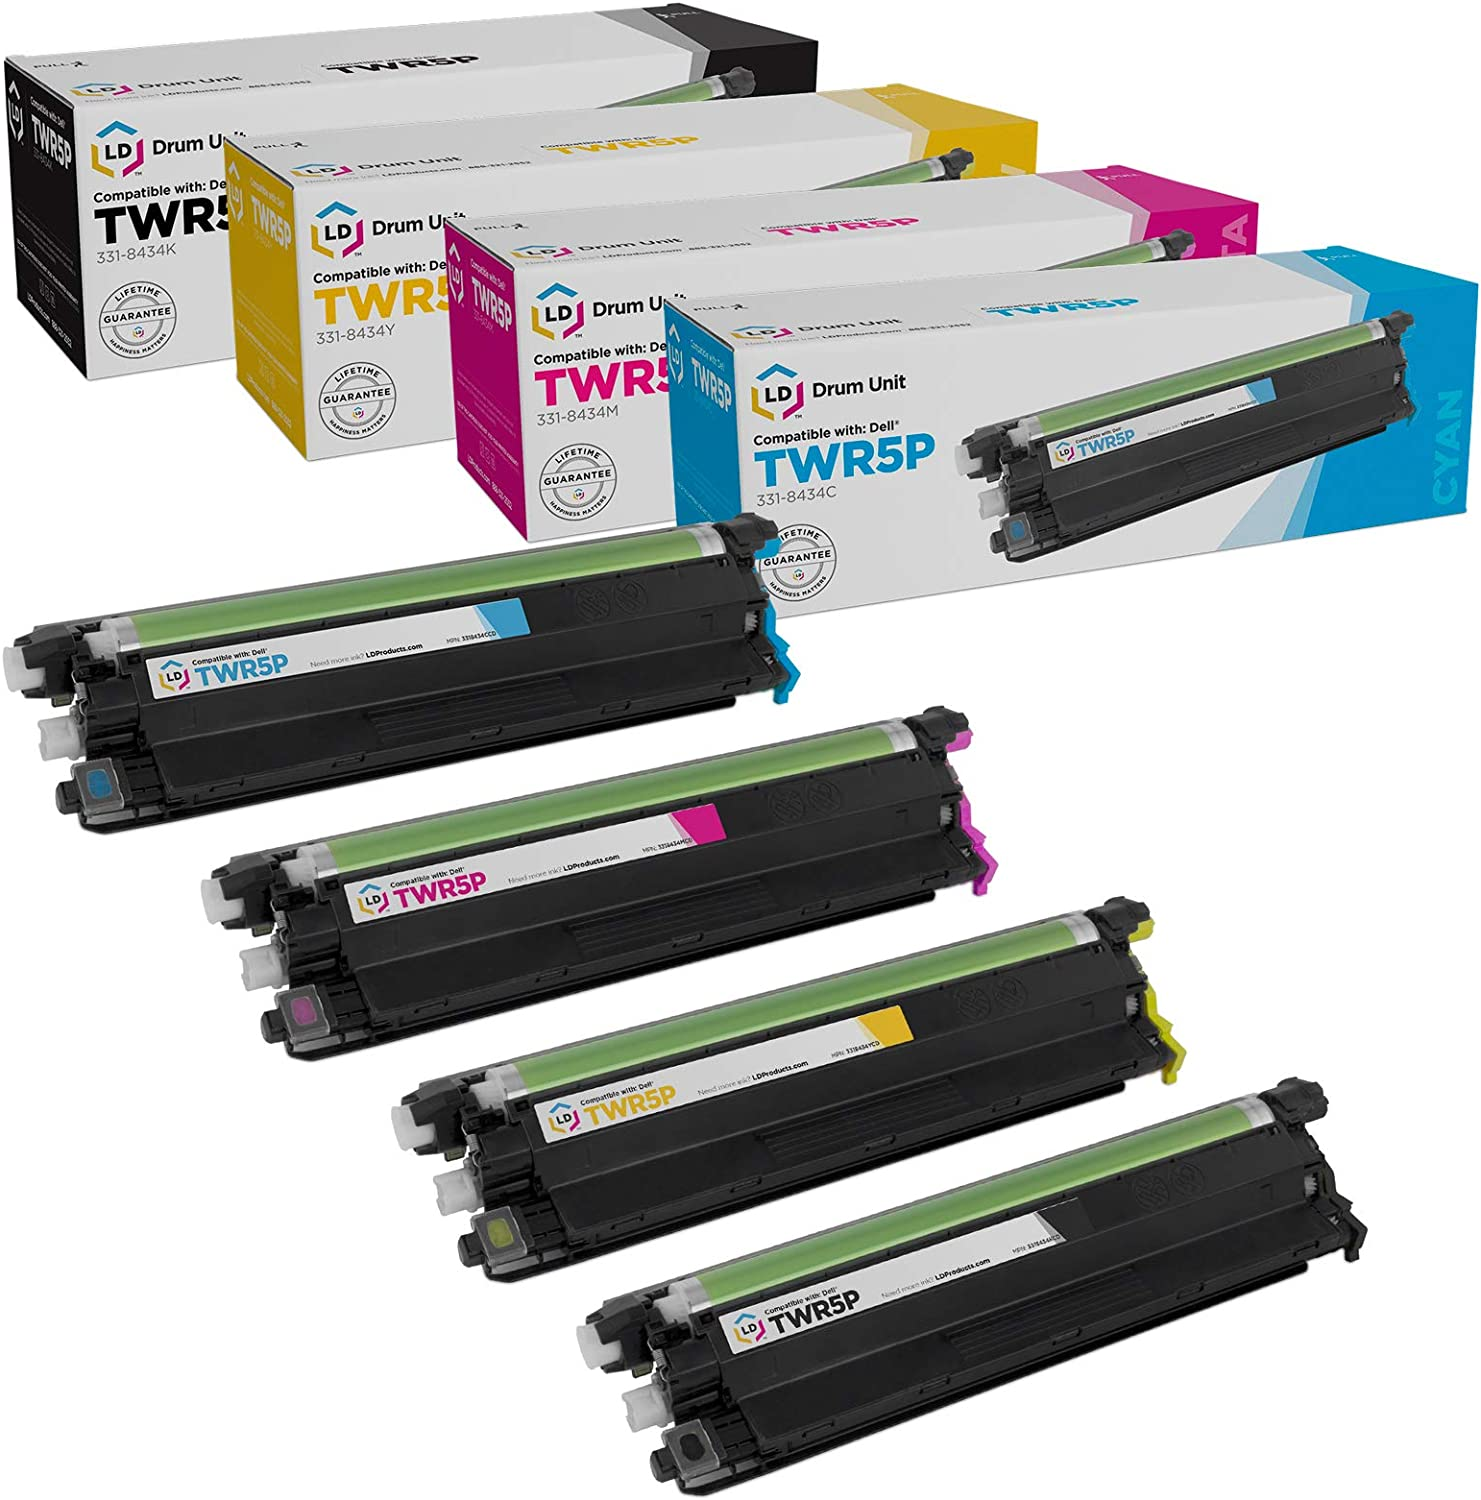 LD Compatible Drum Cartridge Replacement for Dell 331-8434 TWR5P (Black, Cyan, Magenta, Yellow, 4-Pack)